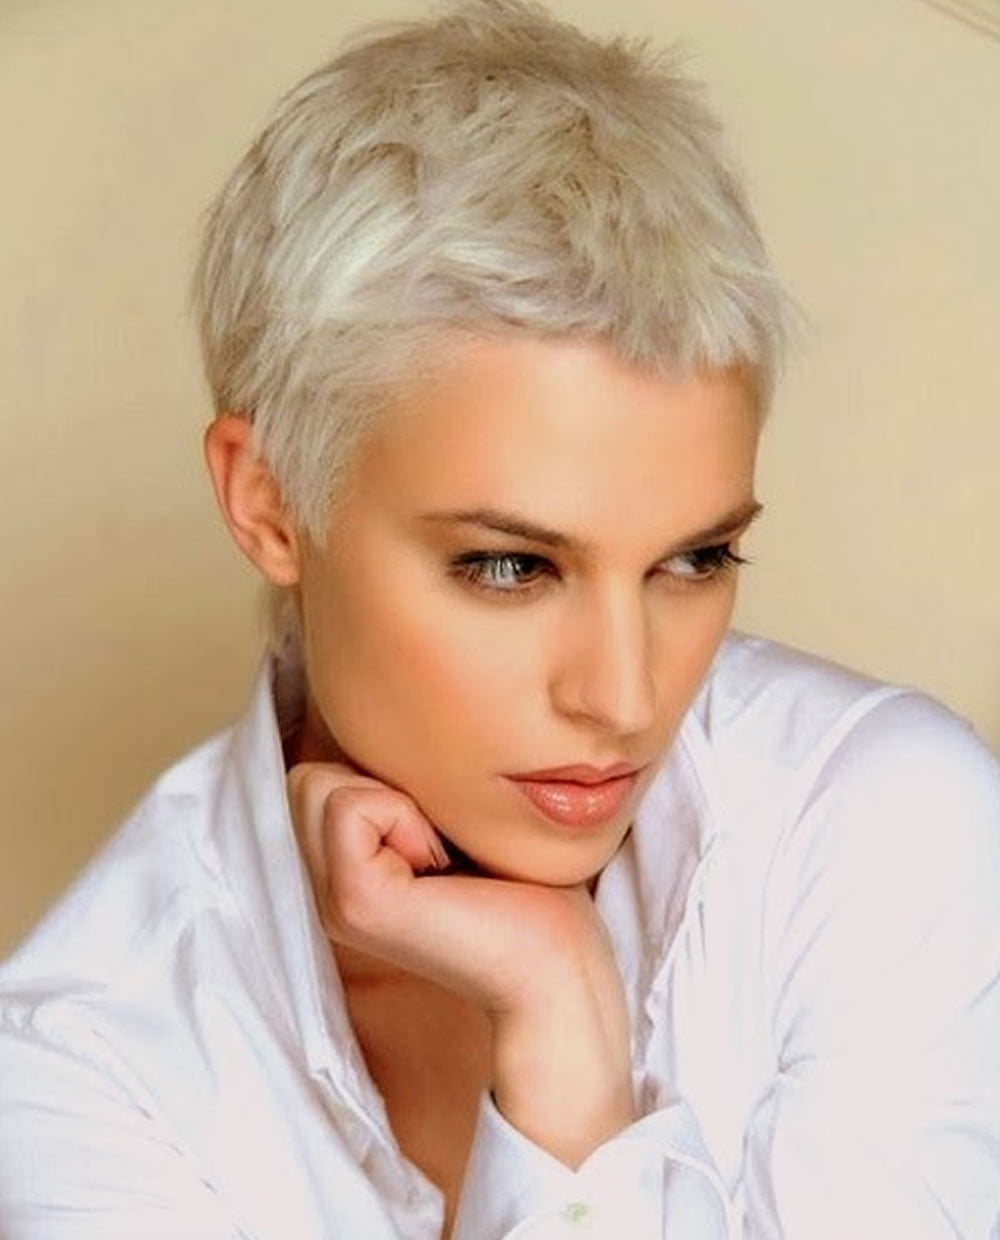 Top 100 Beautiful Short Haircuts for Women 2018 | Images+Videos - Page 3 - HAIRSTYLES